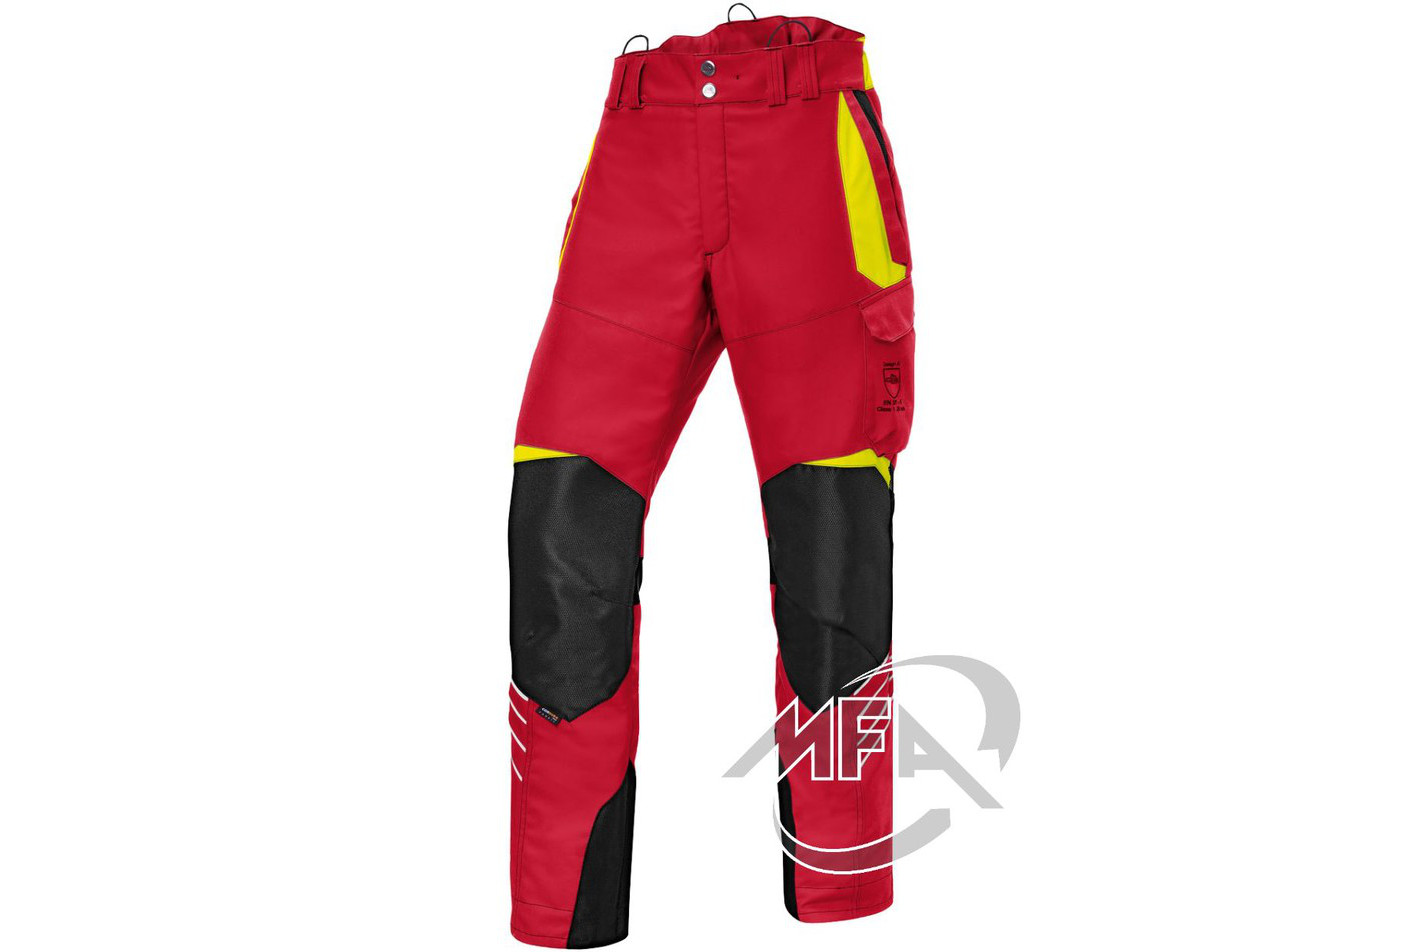 Pantalon anti coupure Forest Kübler - Rouge